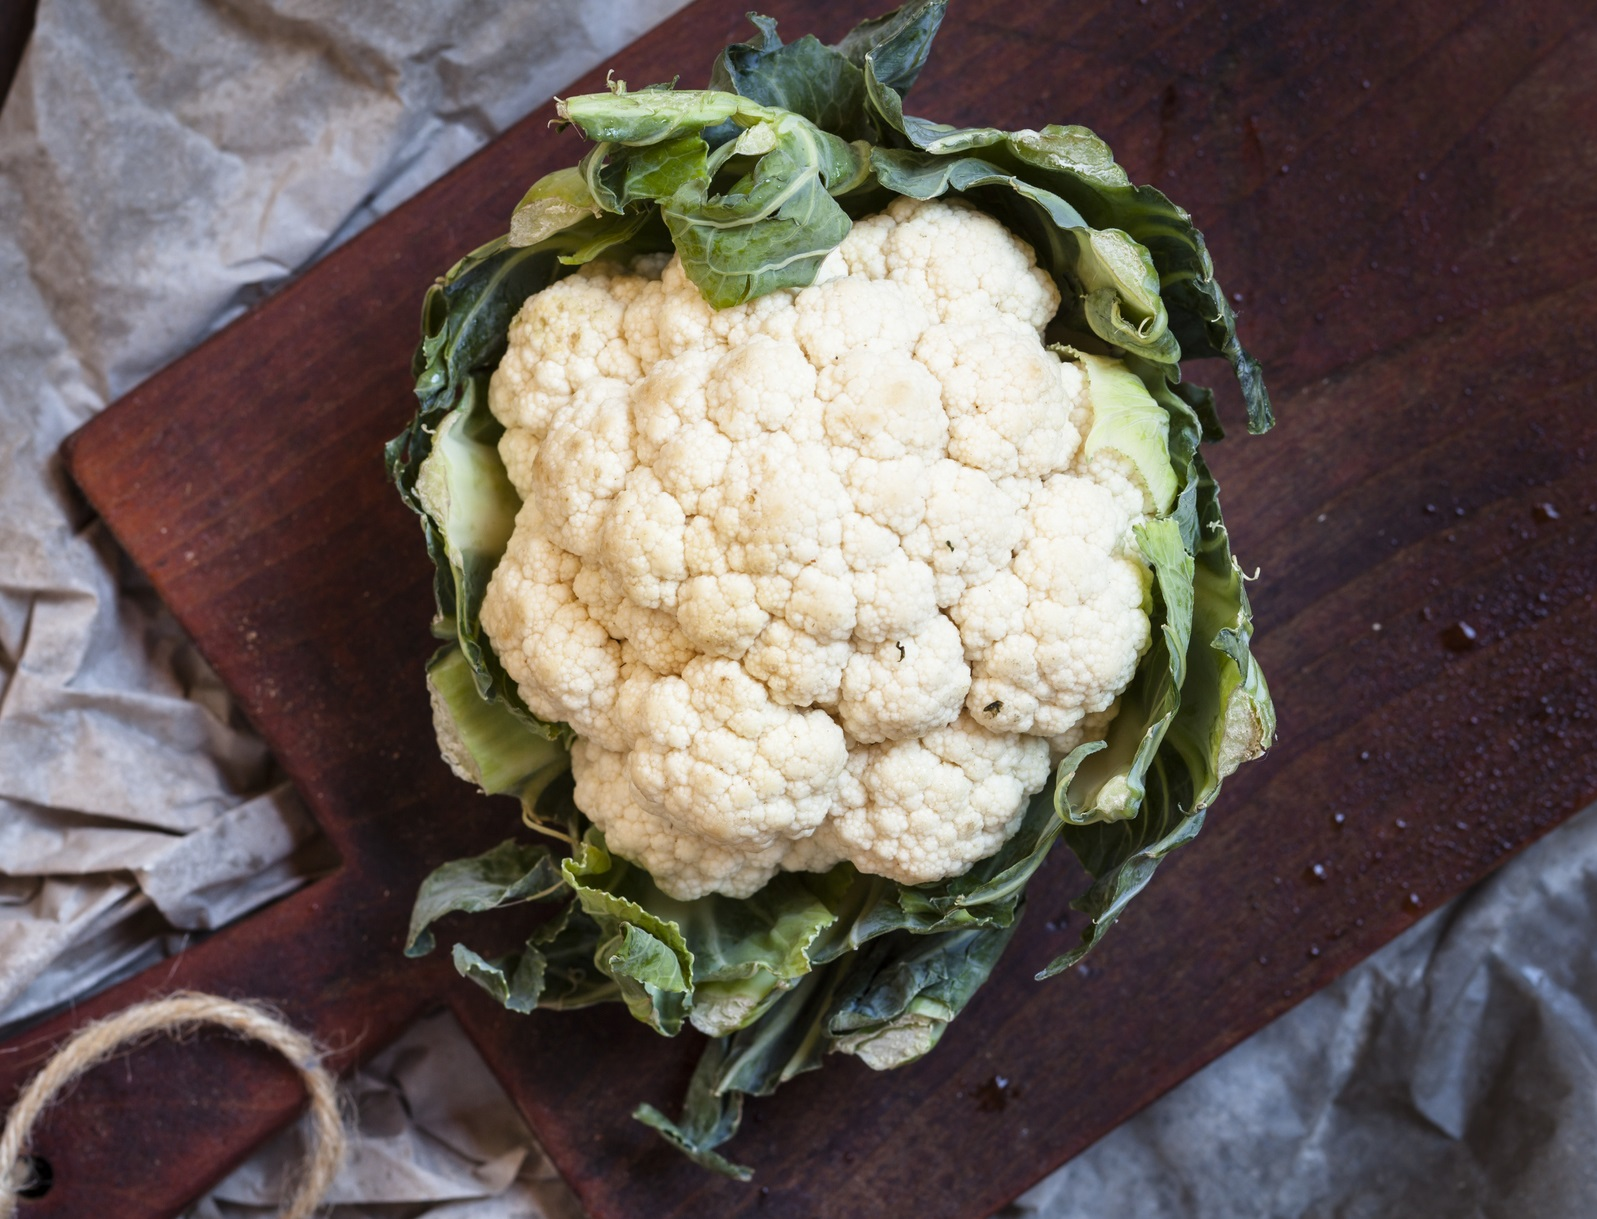 Cauliflower with green attached